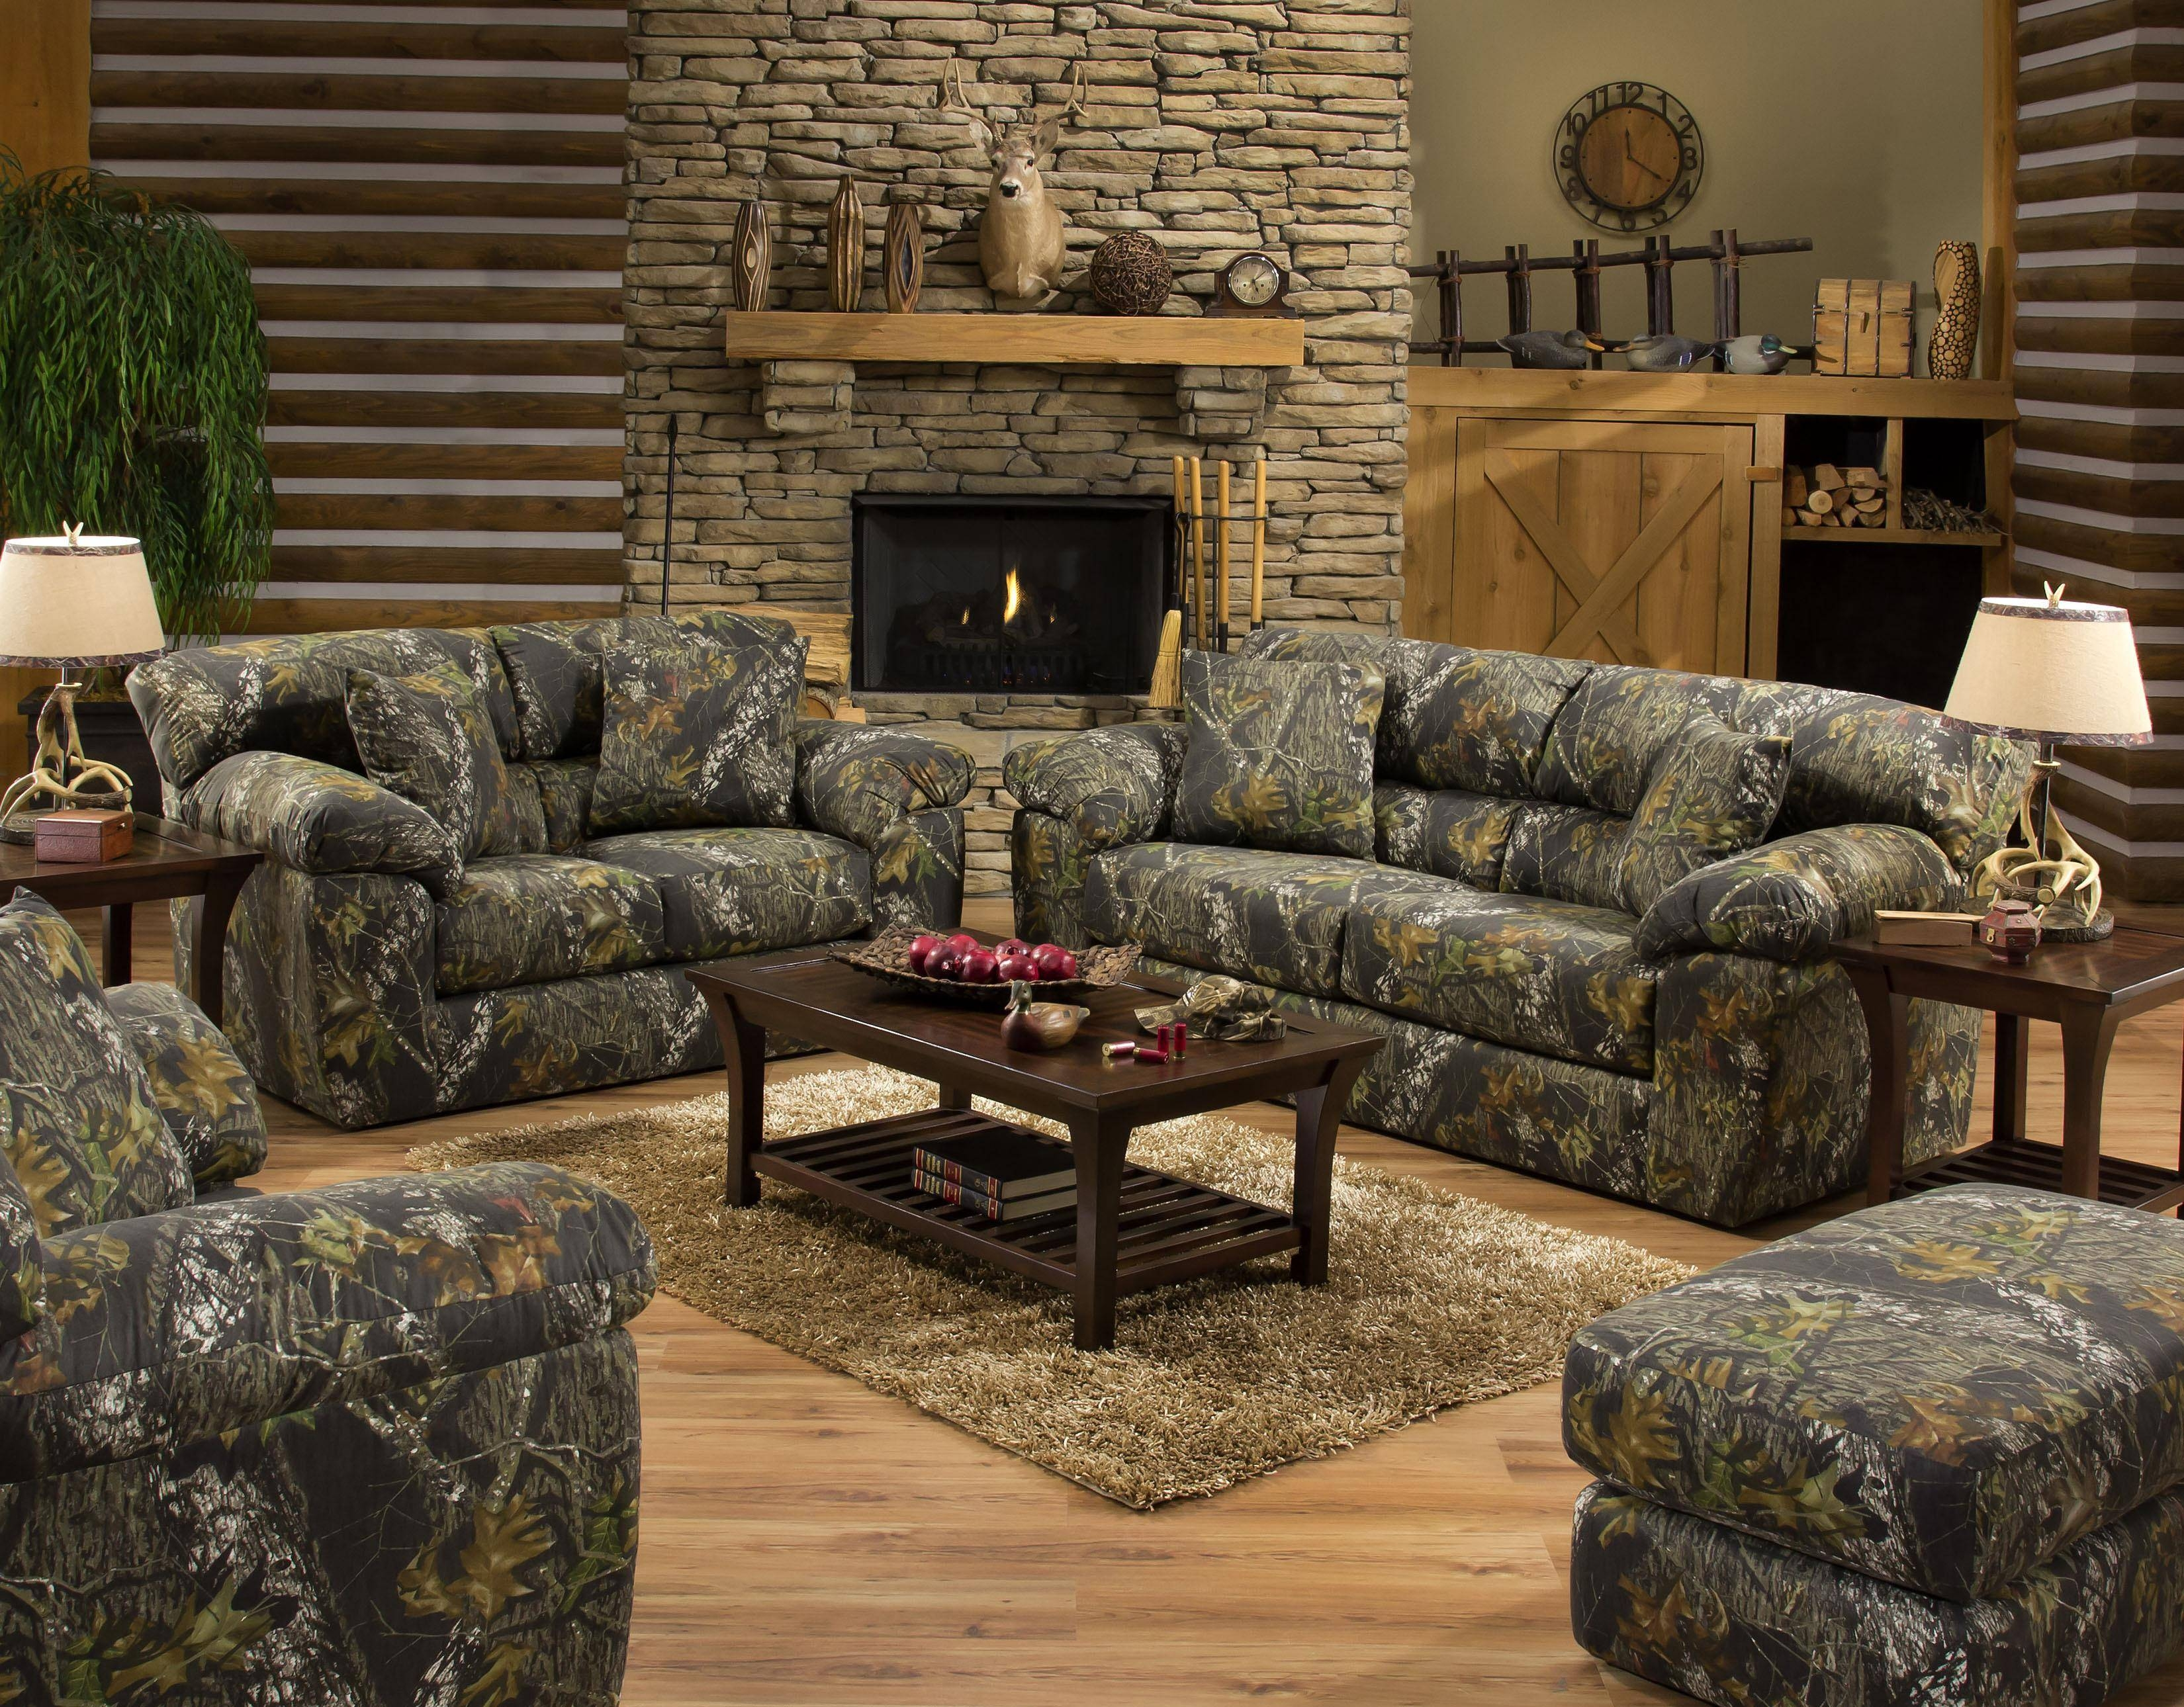 Camouflage Two Seat Loveseatjackson Furniture | Wolf And pertaining to Camouflage Sofas (Image 6 of 15)